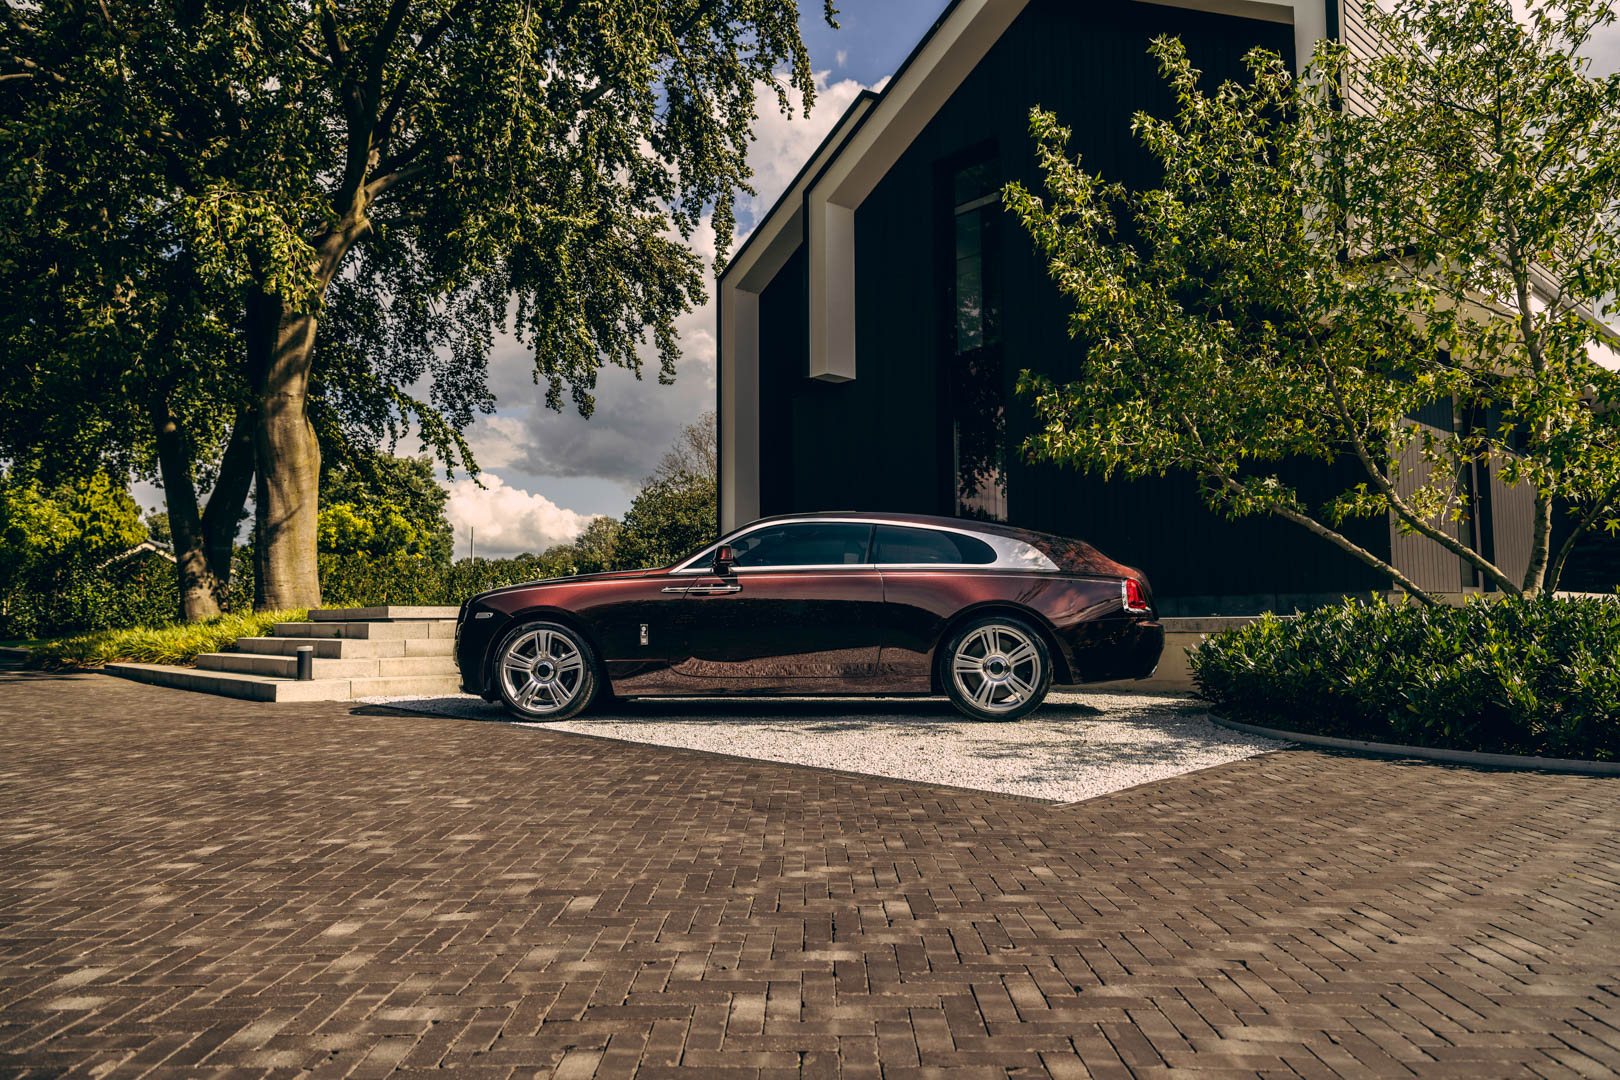 Rolls Royce Wraith Shooting Brake Neils van Roij Design 5